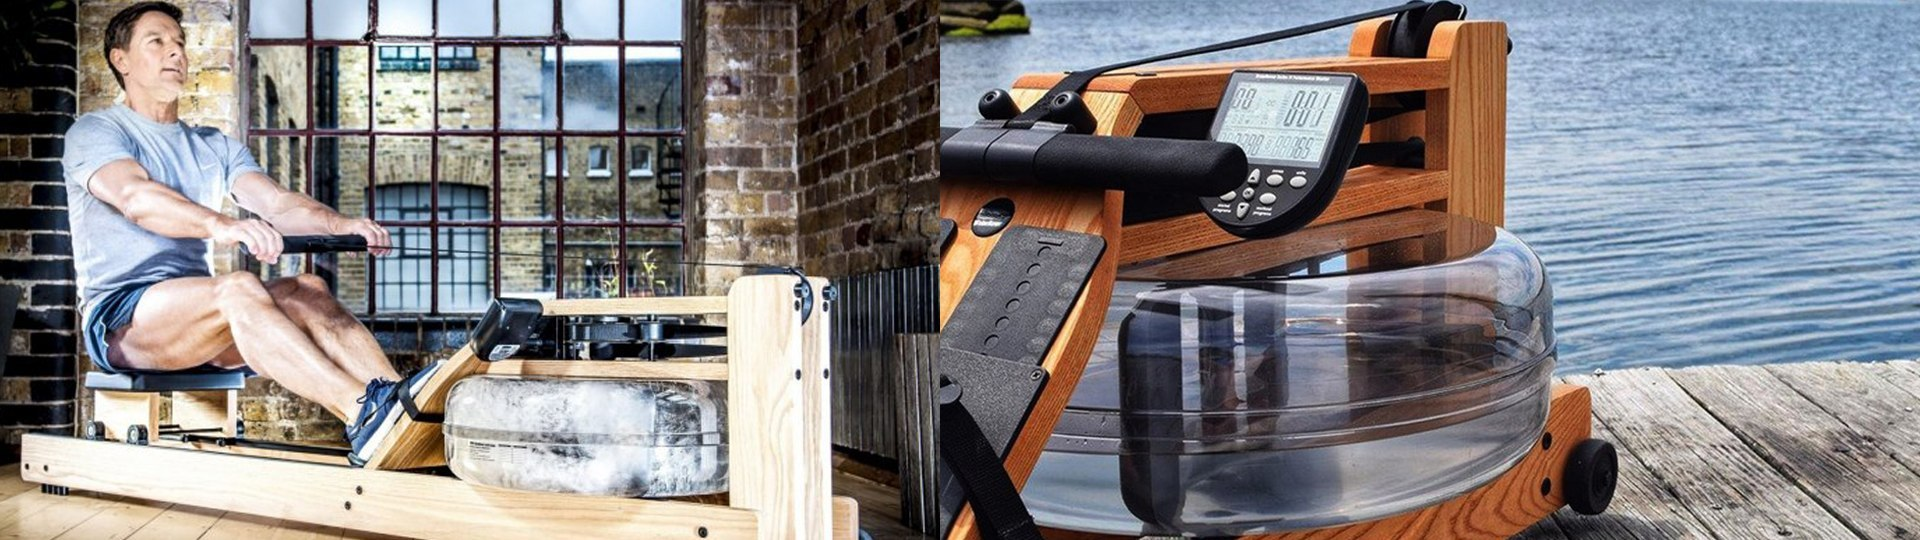 The difference between a WaterRower rowing machine and other rowers